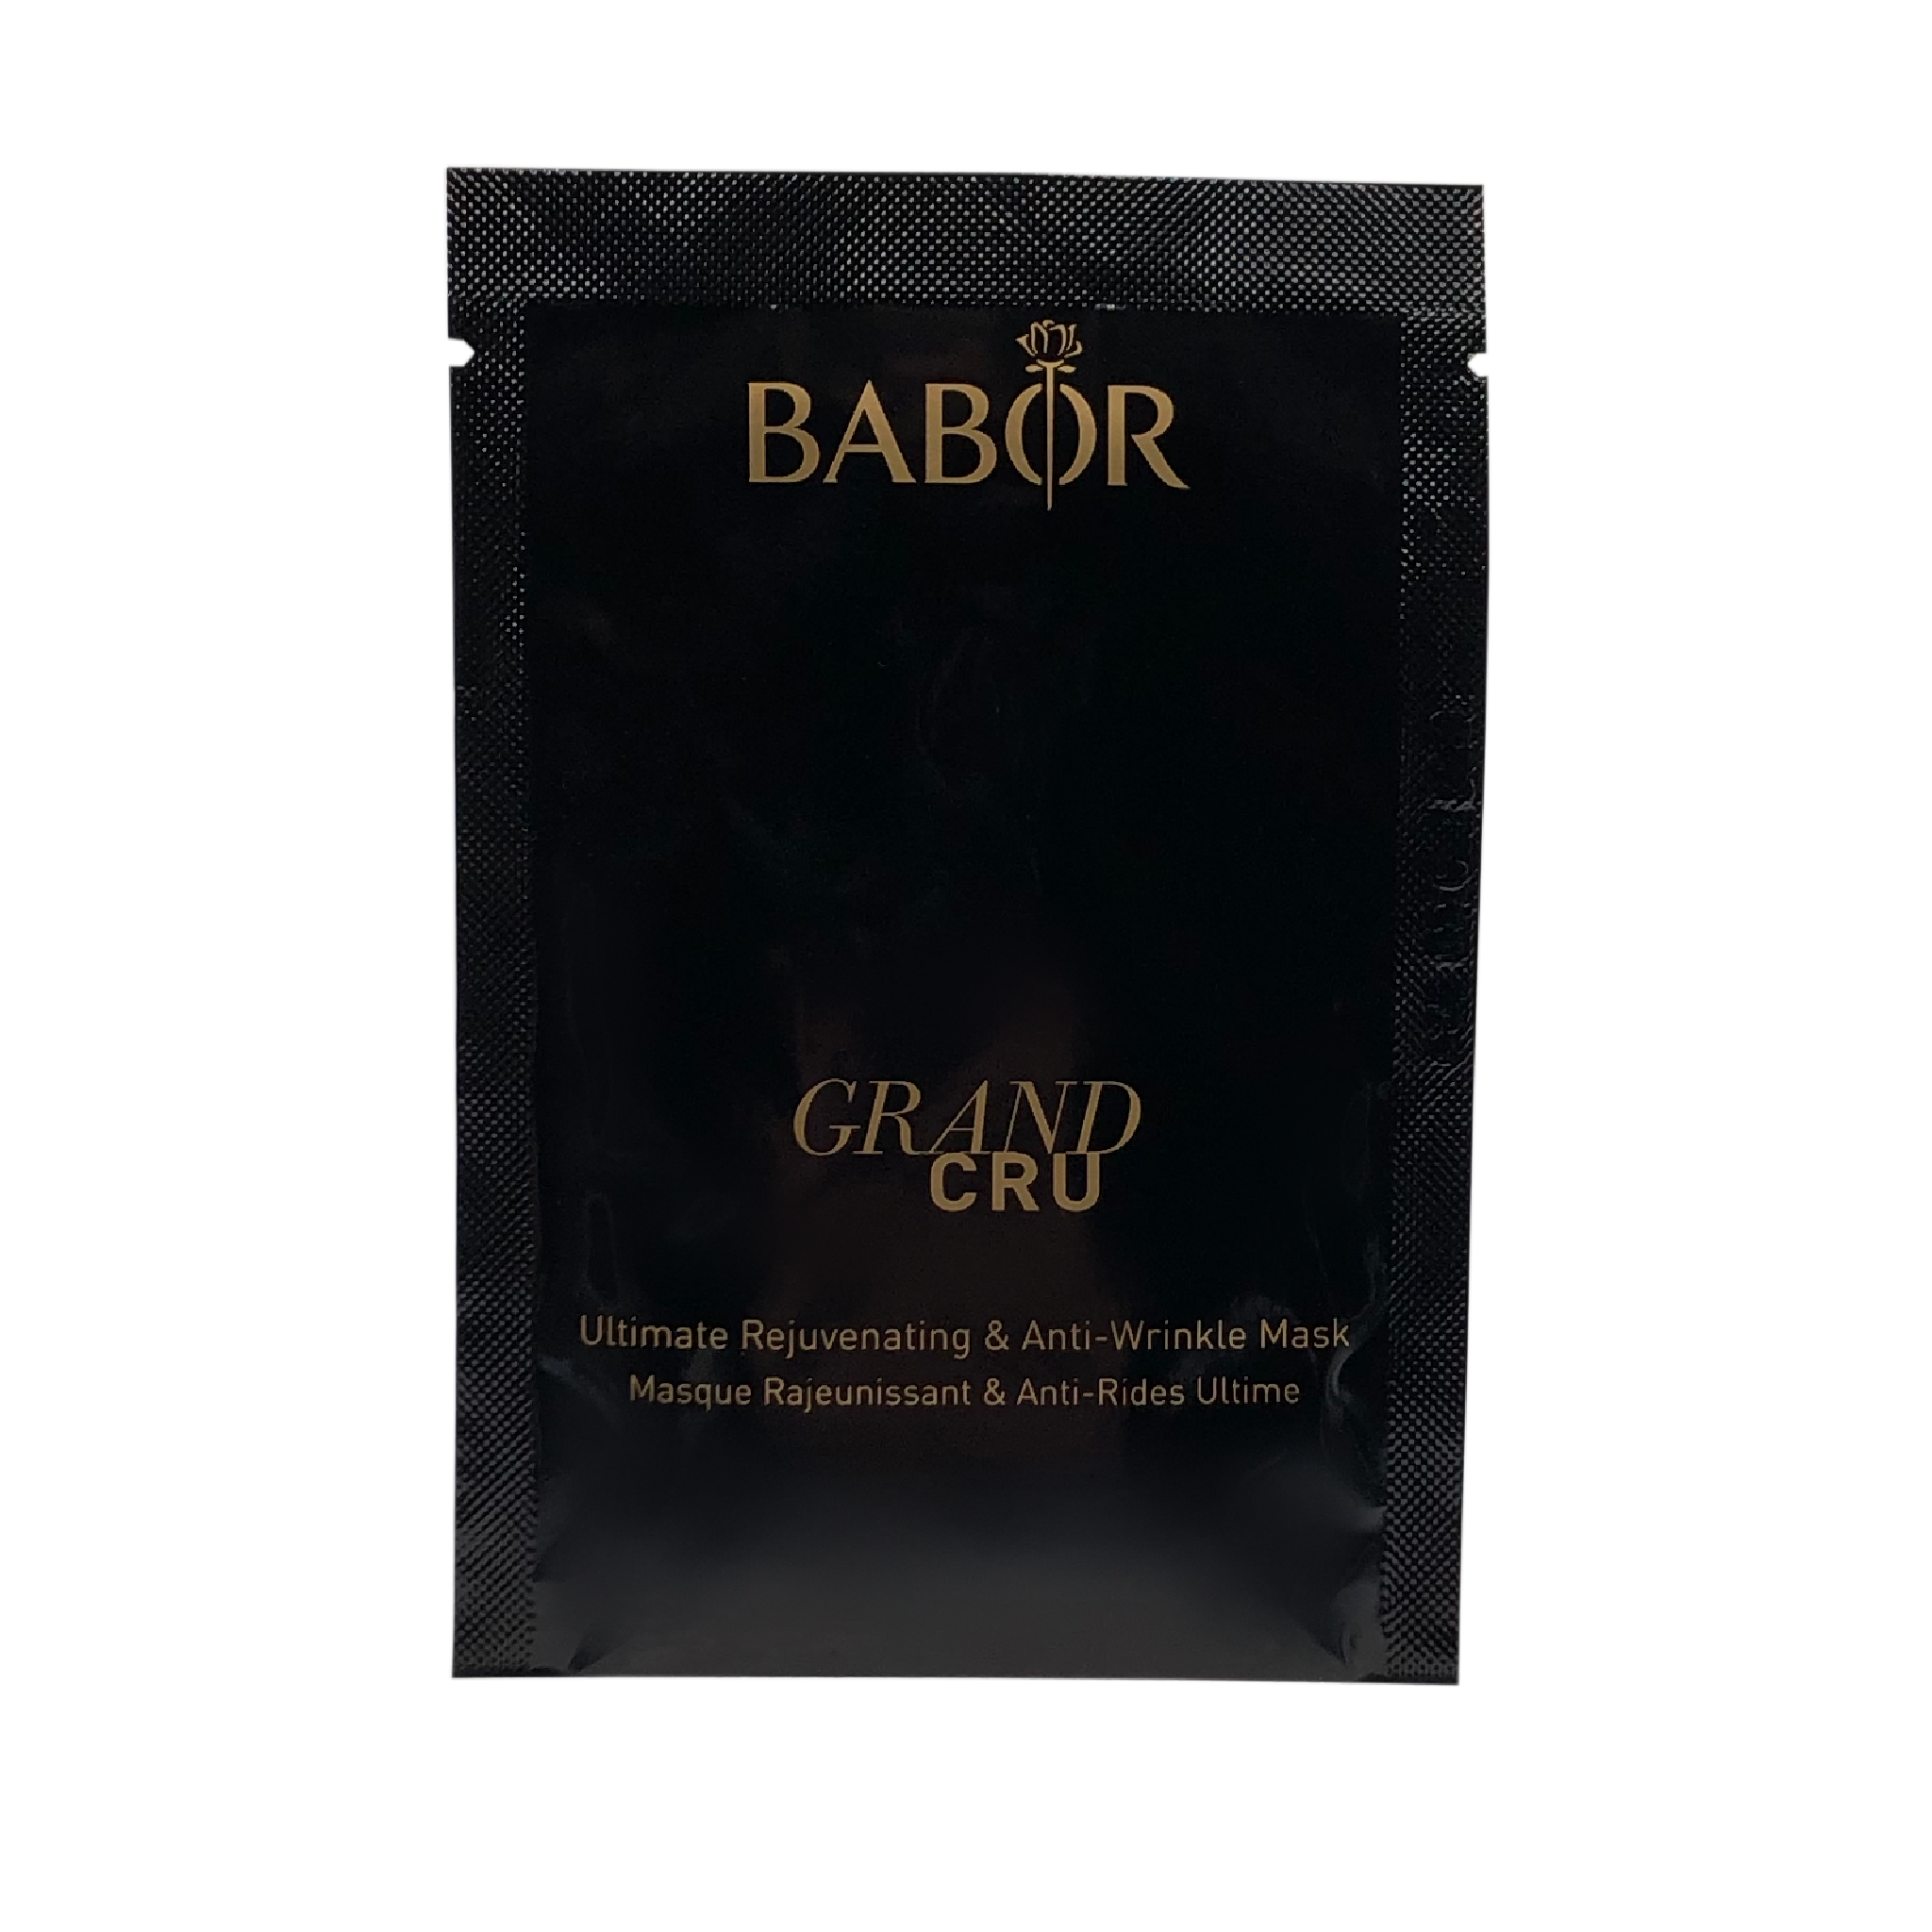 Grand Cru Facial Kit